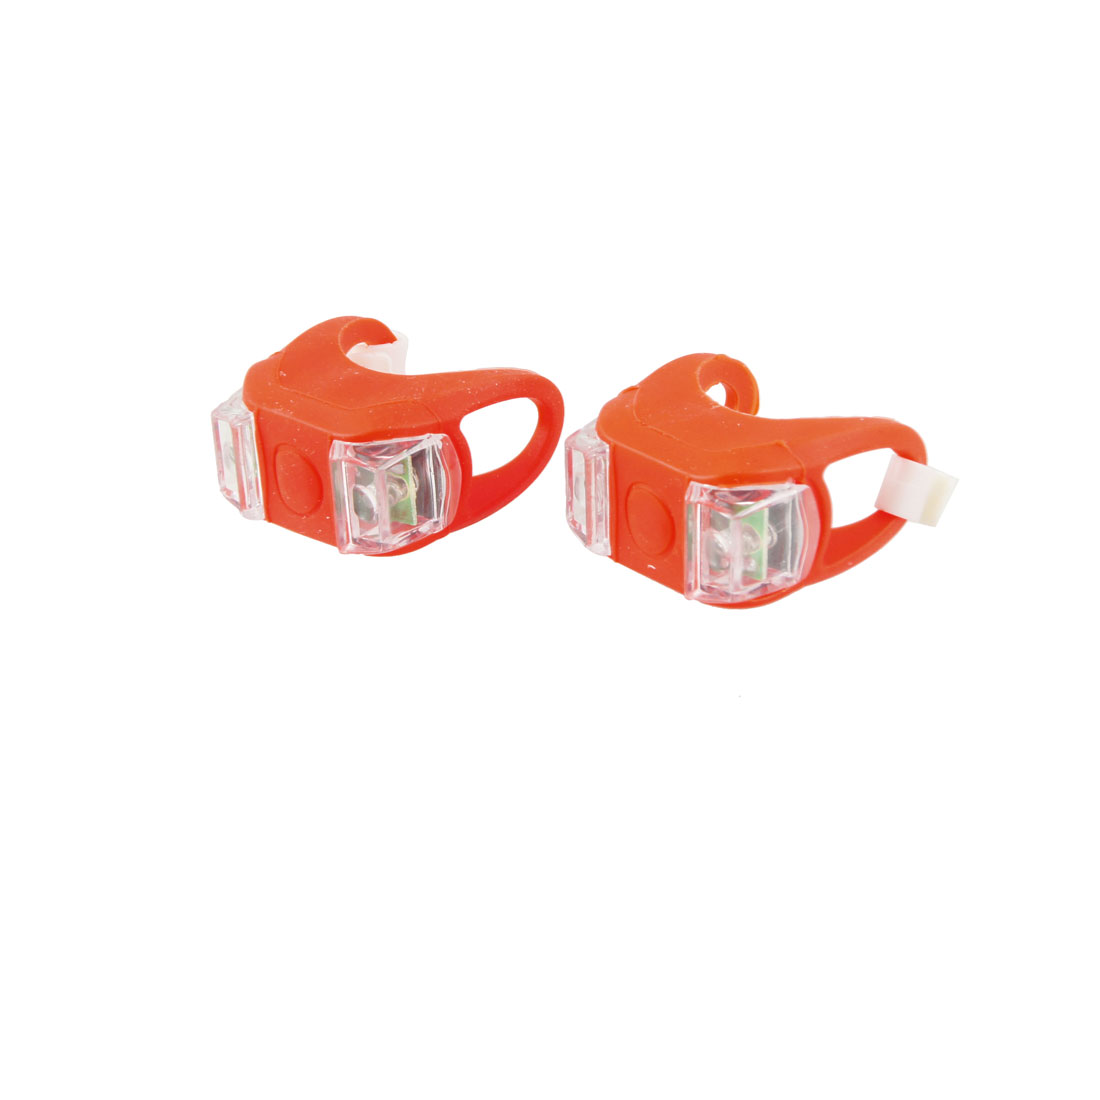 2 Pieces Mini 3 Function Red LED Silicone Bicycle Bike Headlight Lamp